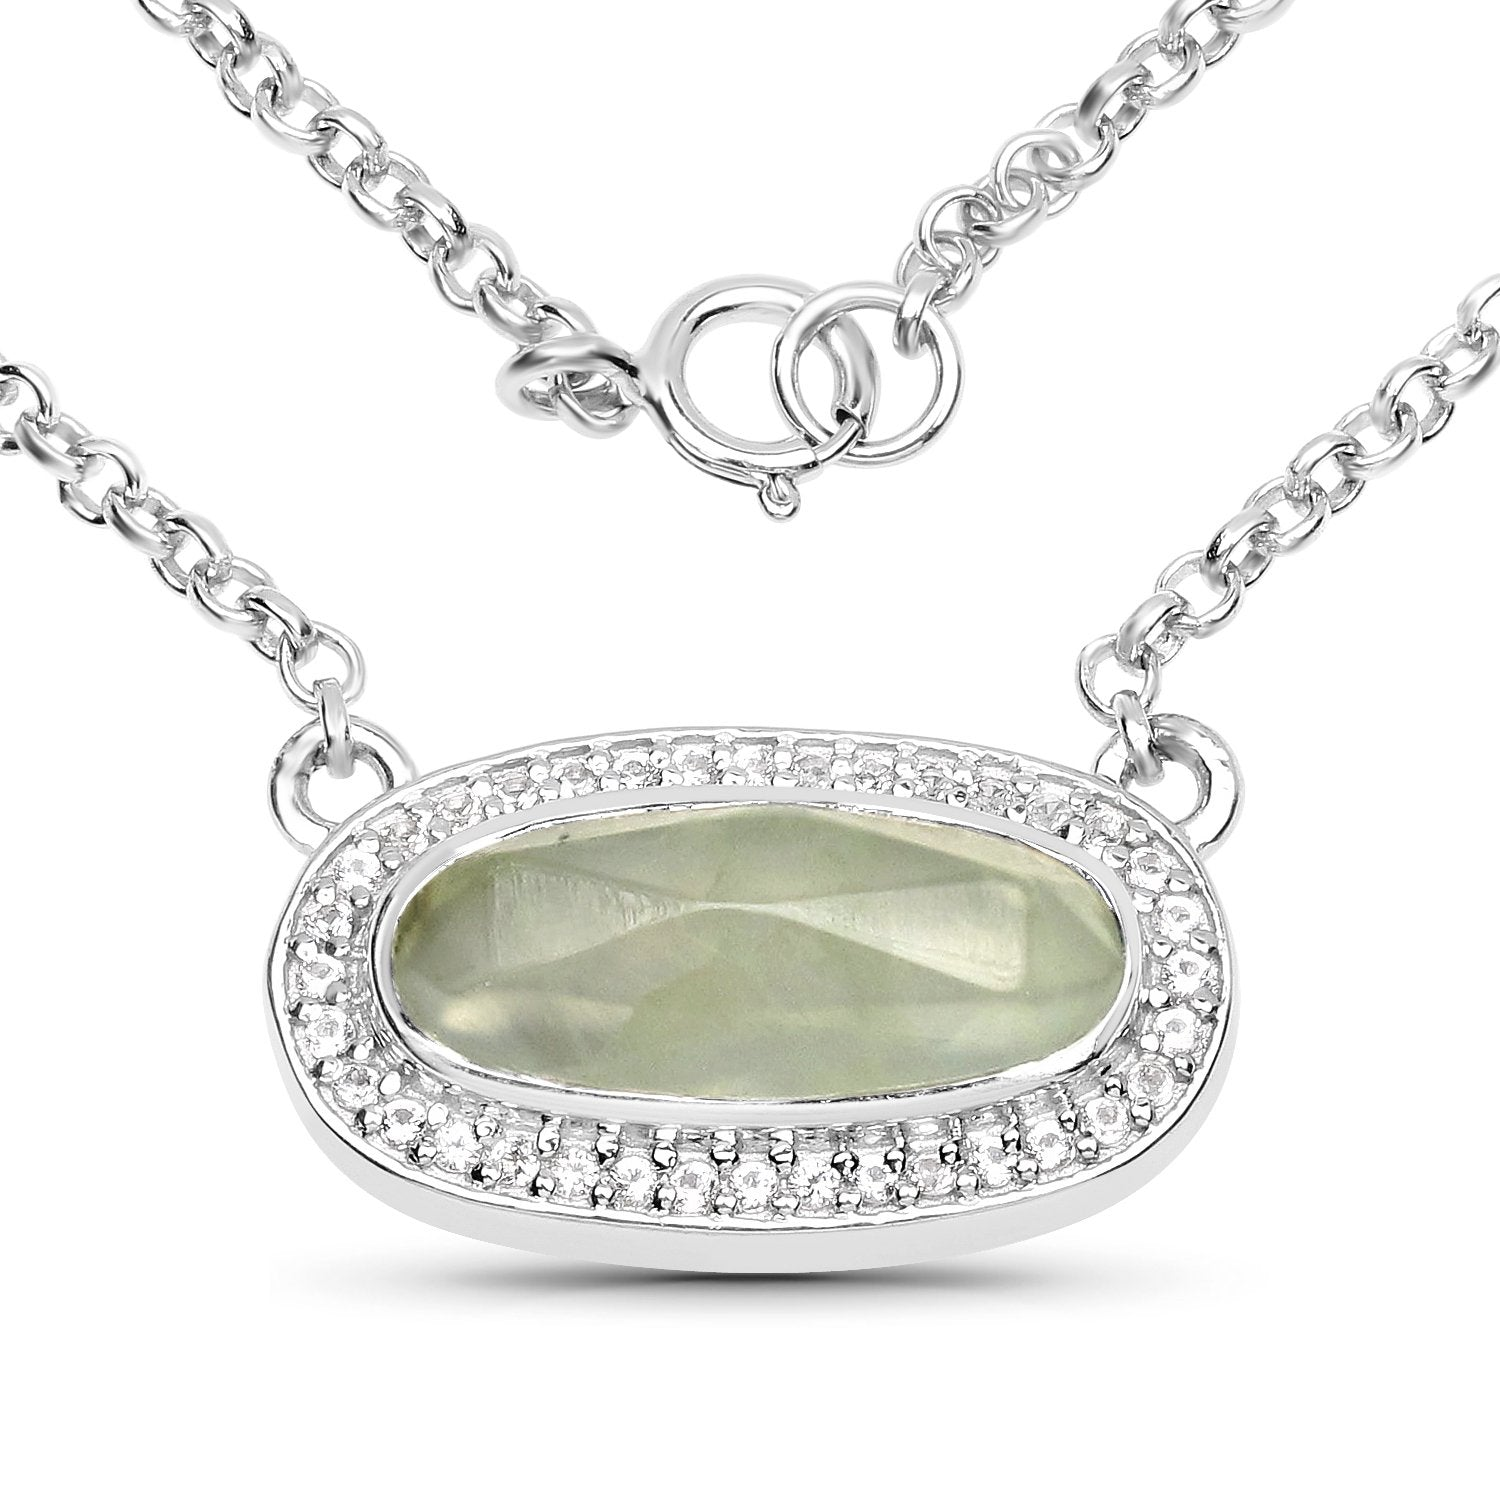 LoveHuang 2.41 Carats Genuine Prehnite and White Topaz Necklace Solid .925 Sterling Silver With Rhodium Plating, 18 Inch Chain